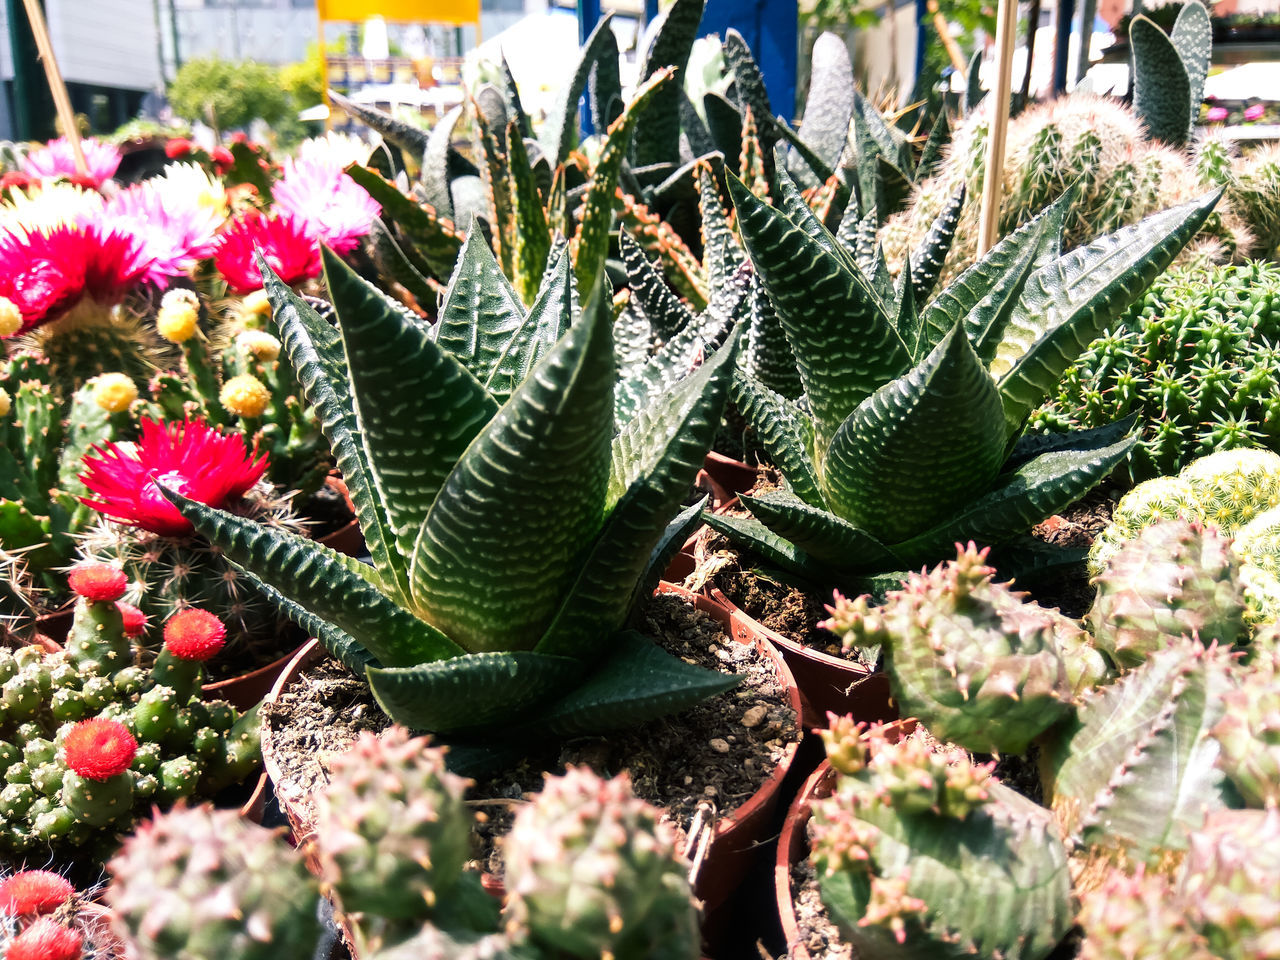 growth, cactus, plant, thorn, nature, green color, spiked, no people, outdoors, beauty in nature, day, sunlight, close-up, uncultivated, freshness, saguaro cactus, fragility, prickly pear cactus, flower